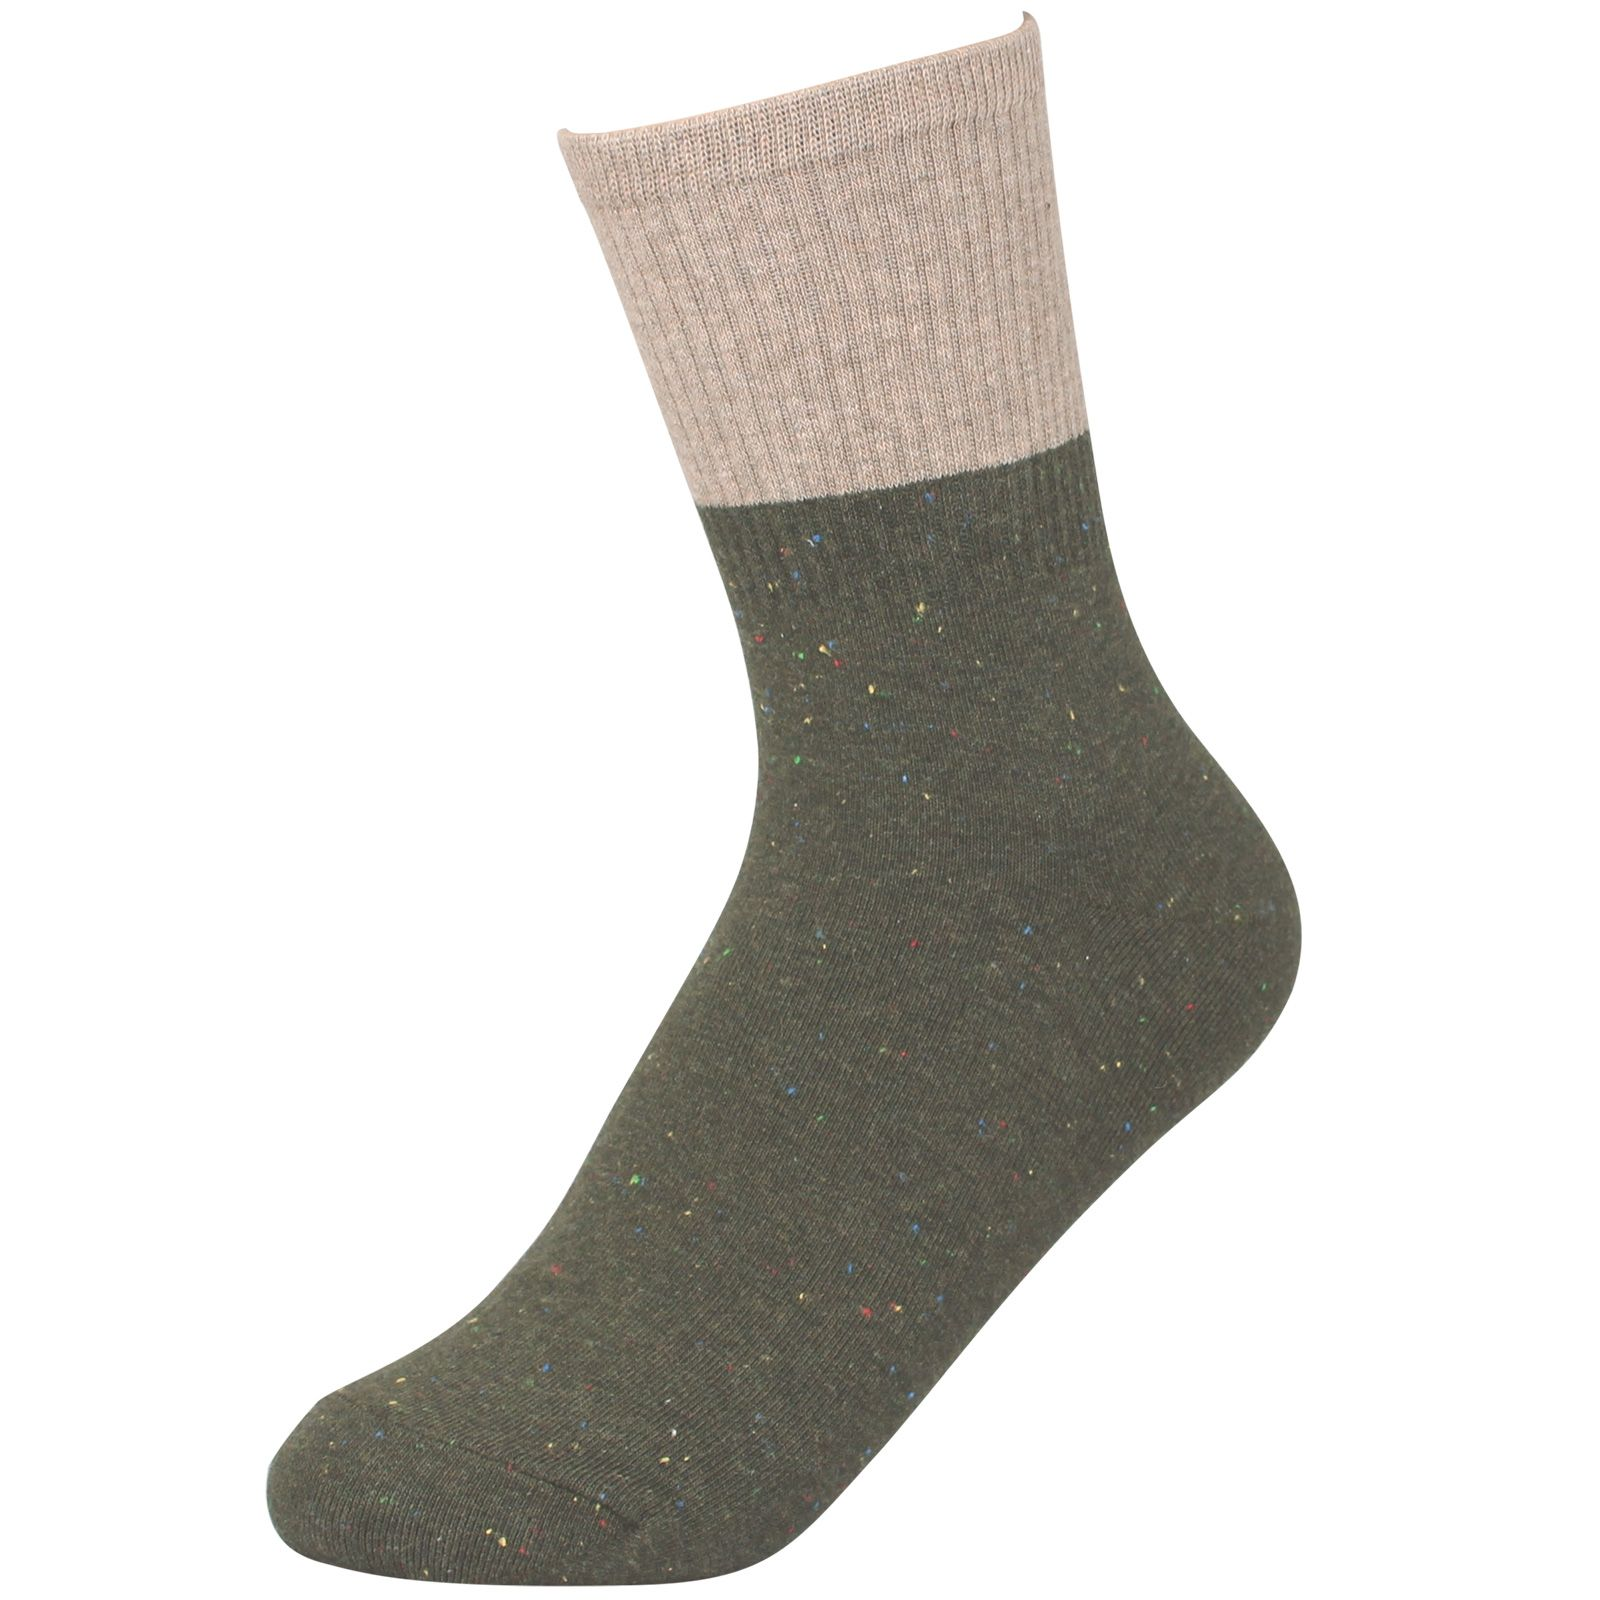 Made In Korea And Imported COMPOSITION : 70% Cotton + 25% Spandex 5%Polyurethan- High Quality Cotton Content Allows To Absorb Sweat & Makes Feel Comfortable DESIGN : These Fancy & Sripes Design Cotton Ankle Socks is made by fine cotton and designed with trendy, comfy. Also, You can style with different color. SIZE : One Size Fit / Reference : Fit Womens Shoes Size : US 5-9 / 220mm~260mm WASH : Machine Wash / Do not bleach